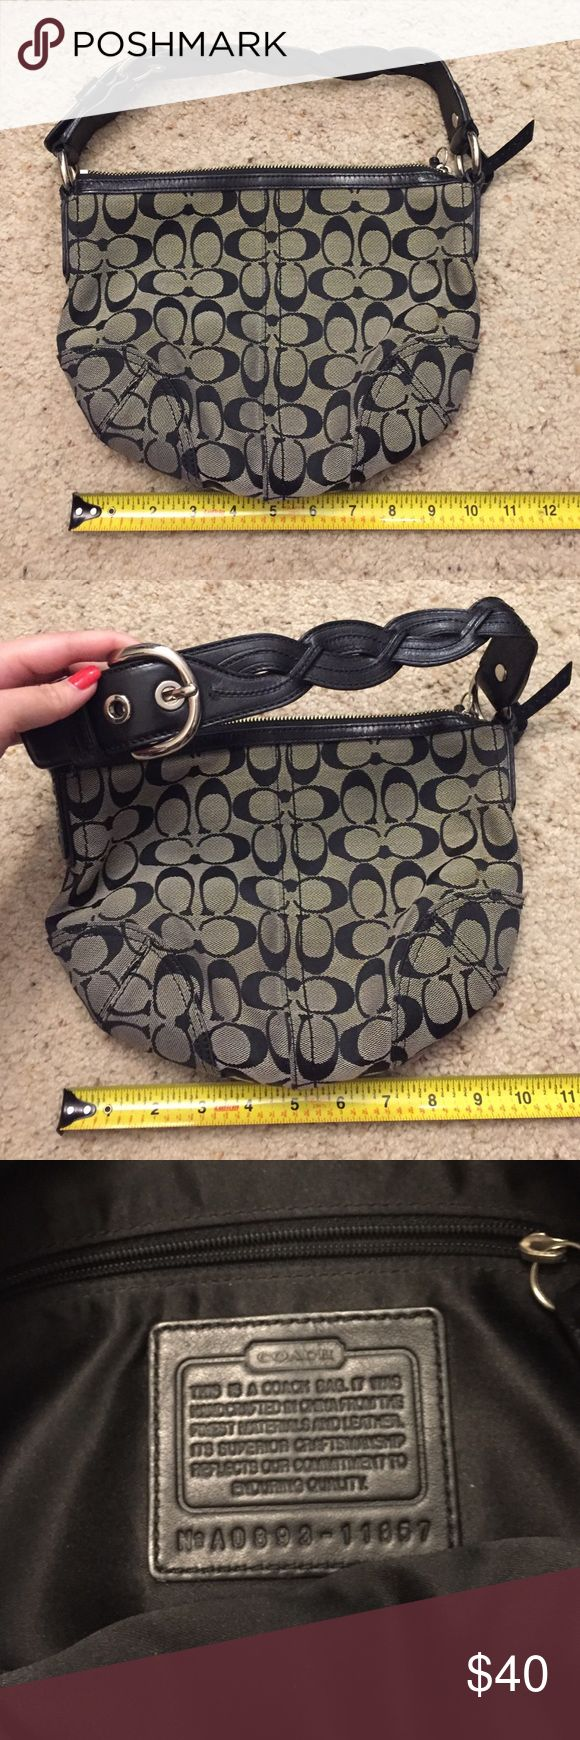 Medium black Coach purse Black Coach purse with braided leather handle. AUTHENTIC. I don't sell fake merchandise. No trades. Please make me an offer, but no lowballs. Coach Bags Hobos